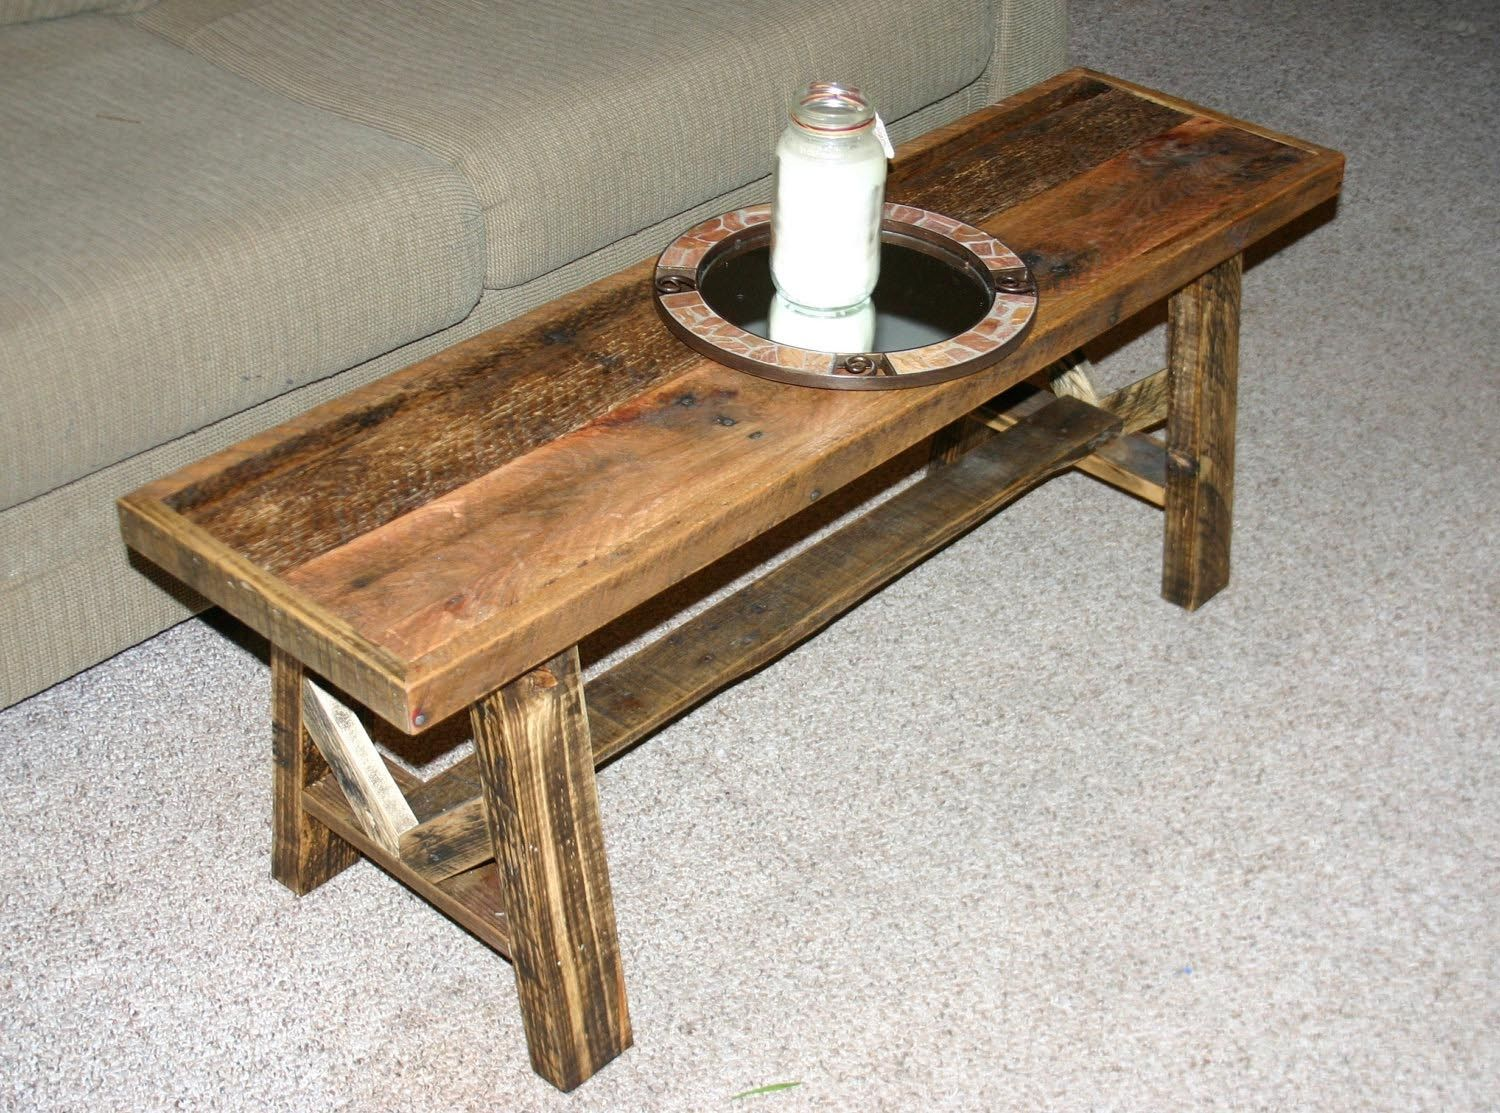 Narrow Coffee Table For Small Space Coffee Table Small Space Coffee Table Narrow Coffee Table Narrow coffee table for small space